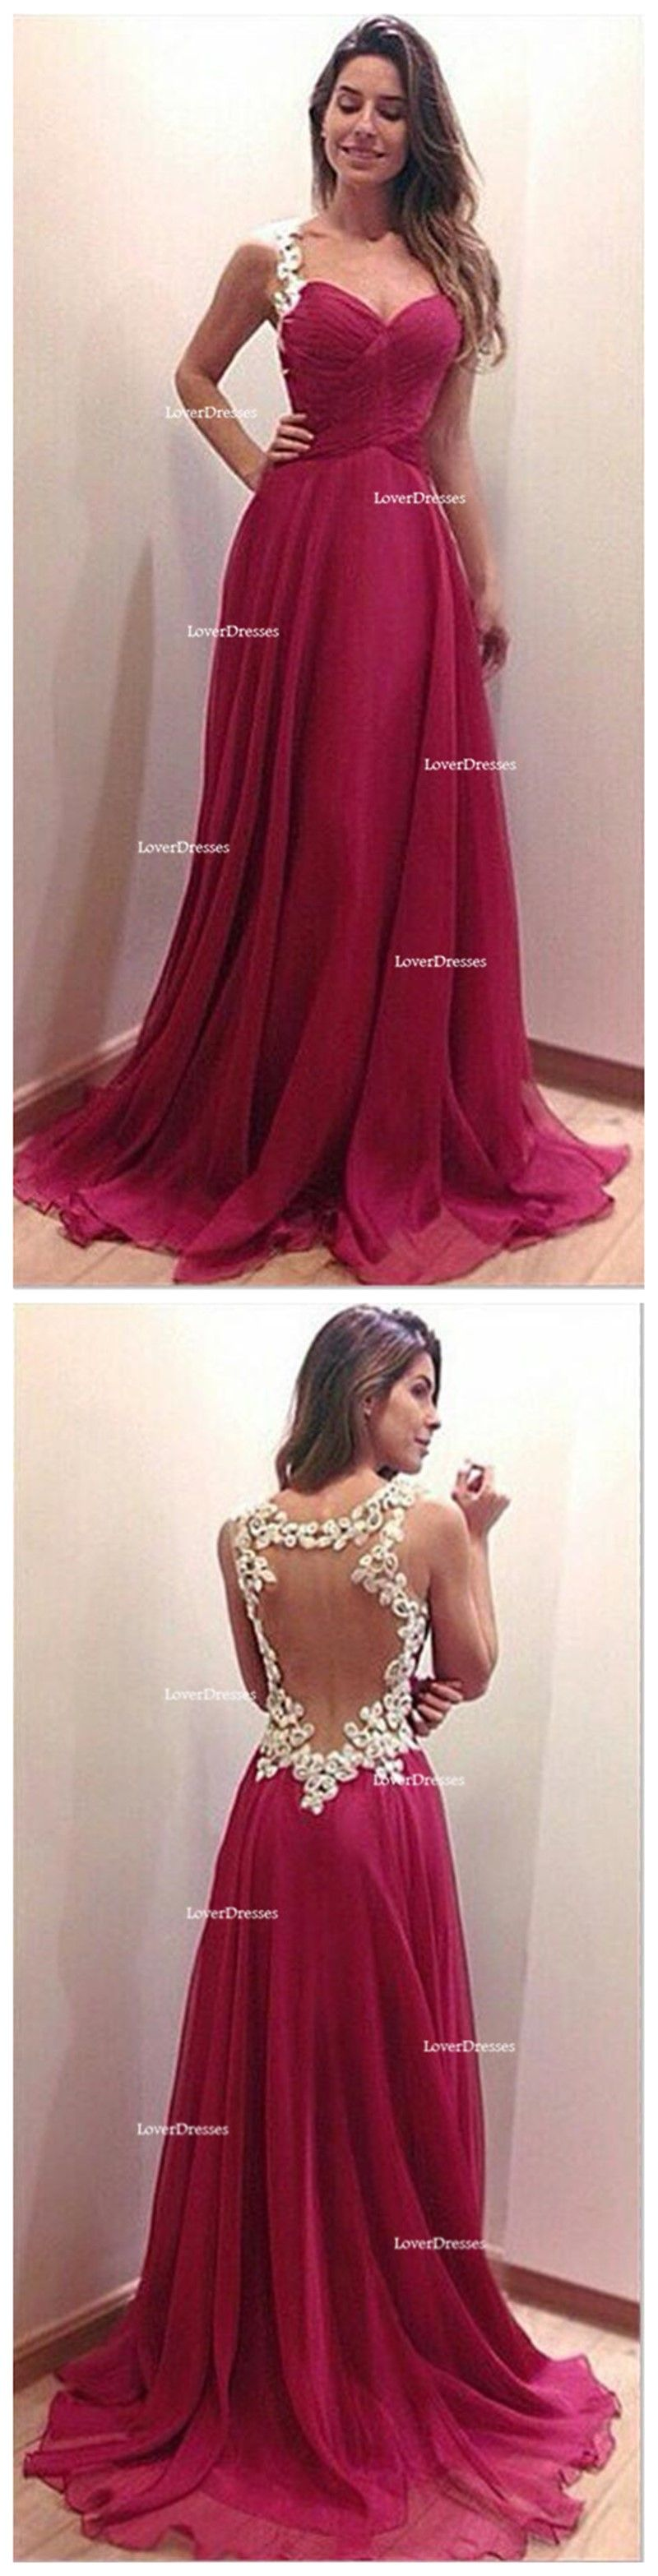 Sexy prom dress backless prom dress red prom dress elegant prom